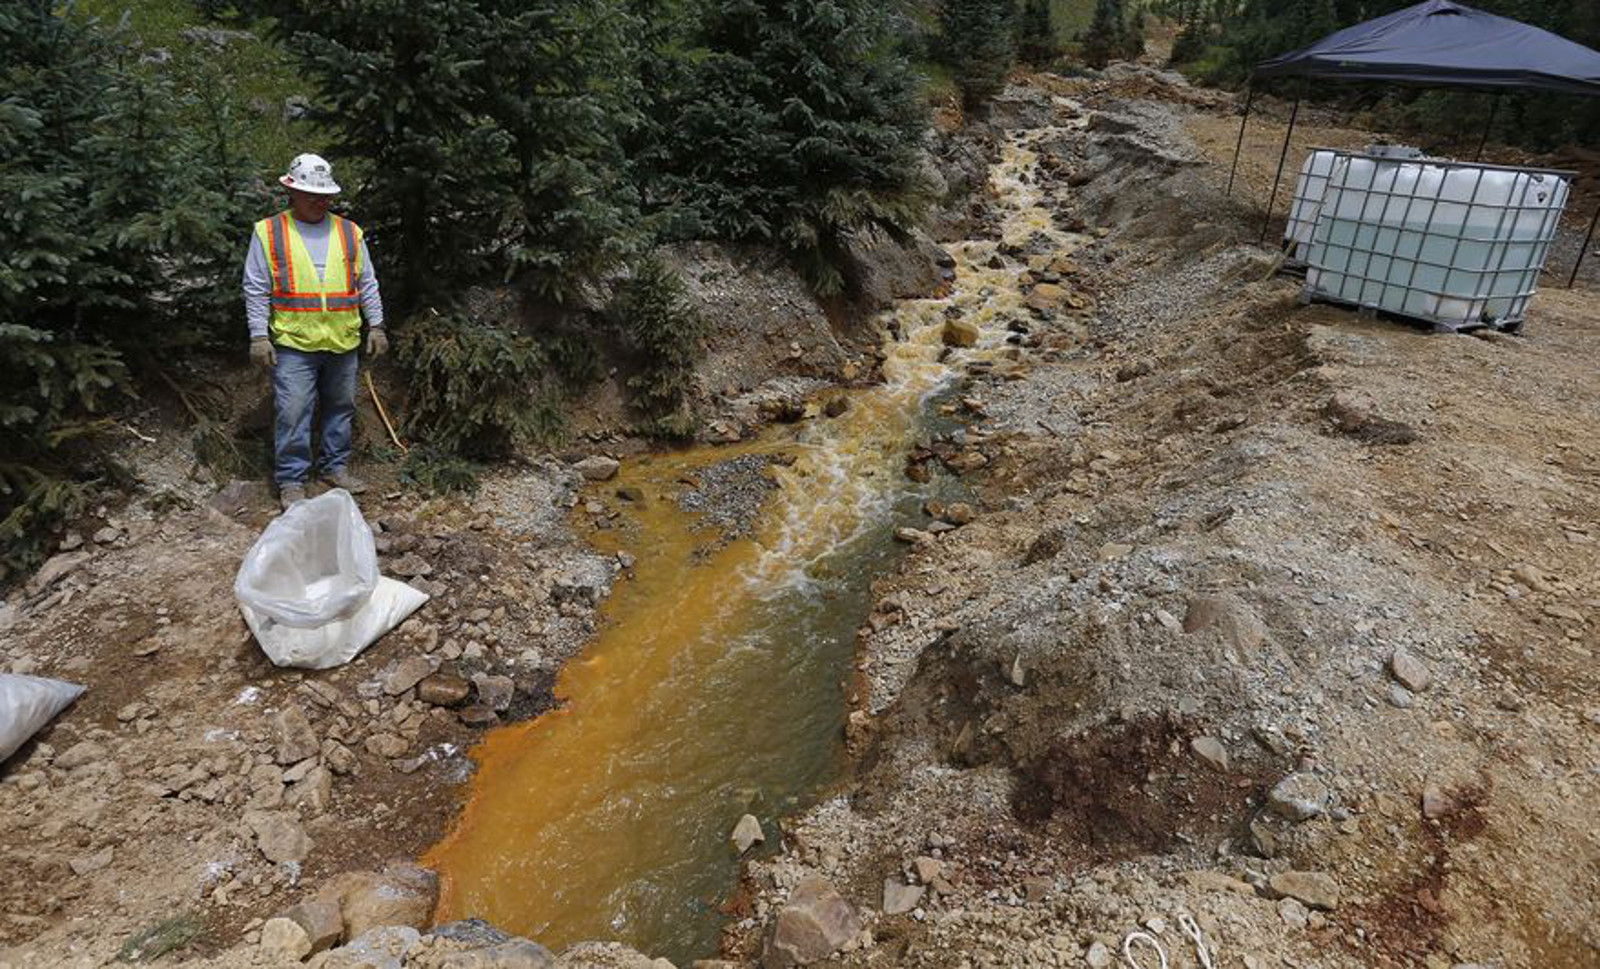 EPA Gold Mine Spill Poses Threat to Human and Animal Health. Who is Holding Them Accountable?